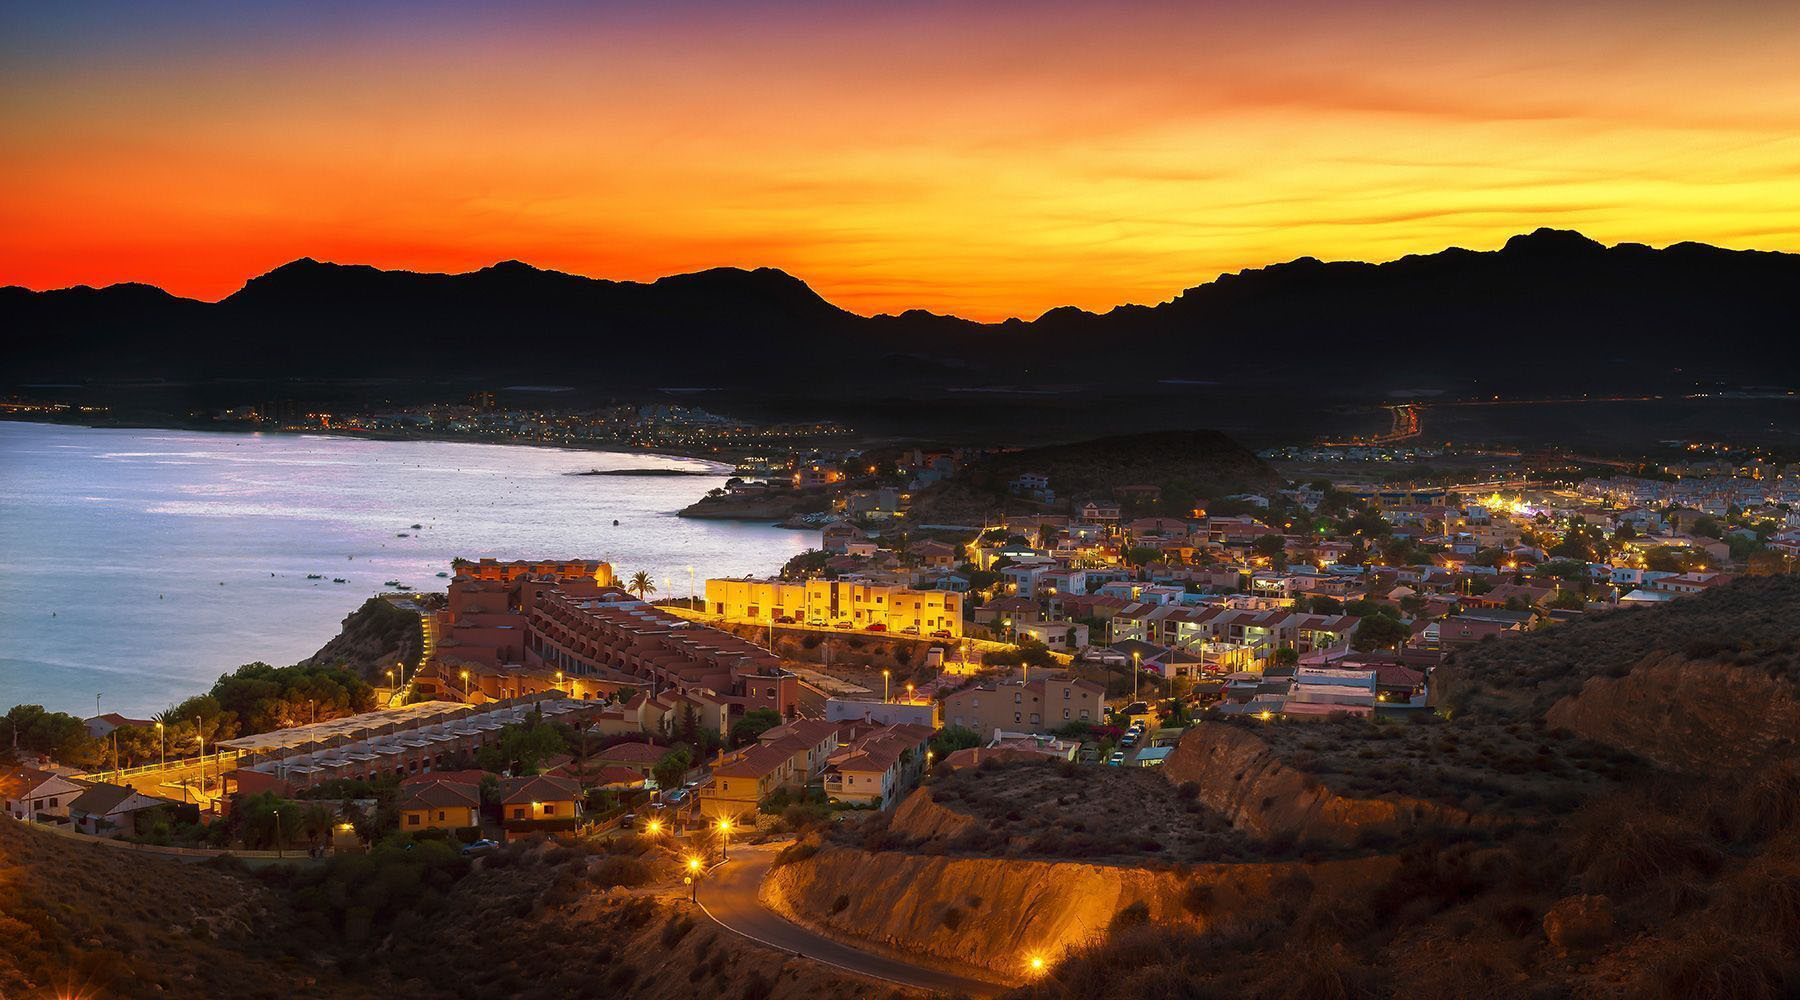 aerial view of the village of almeria spain